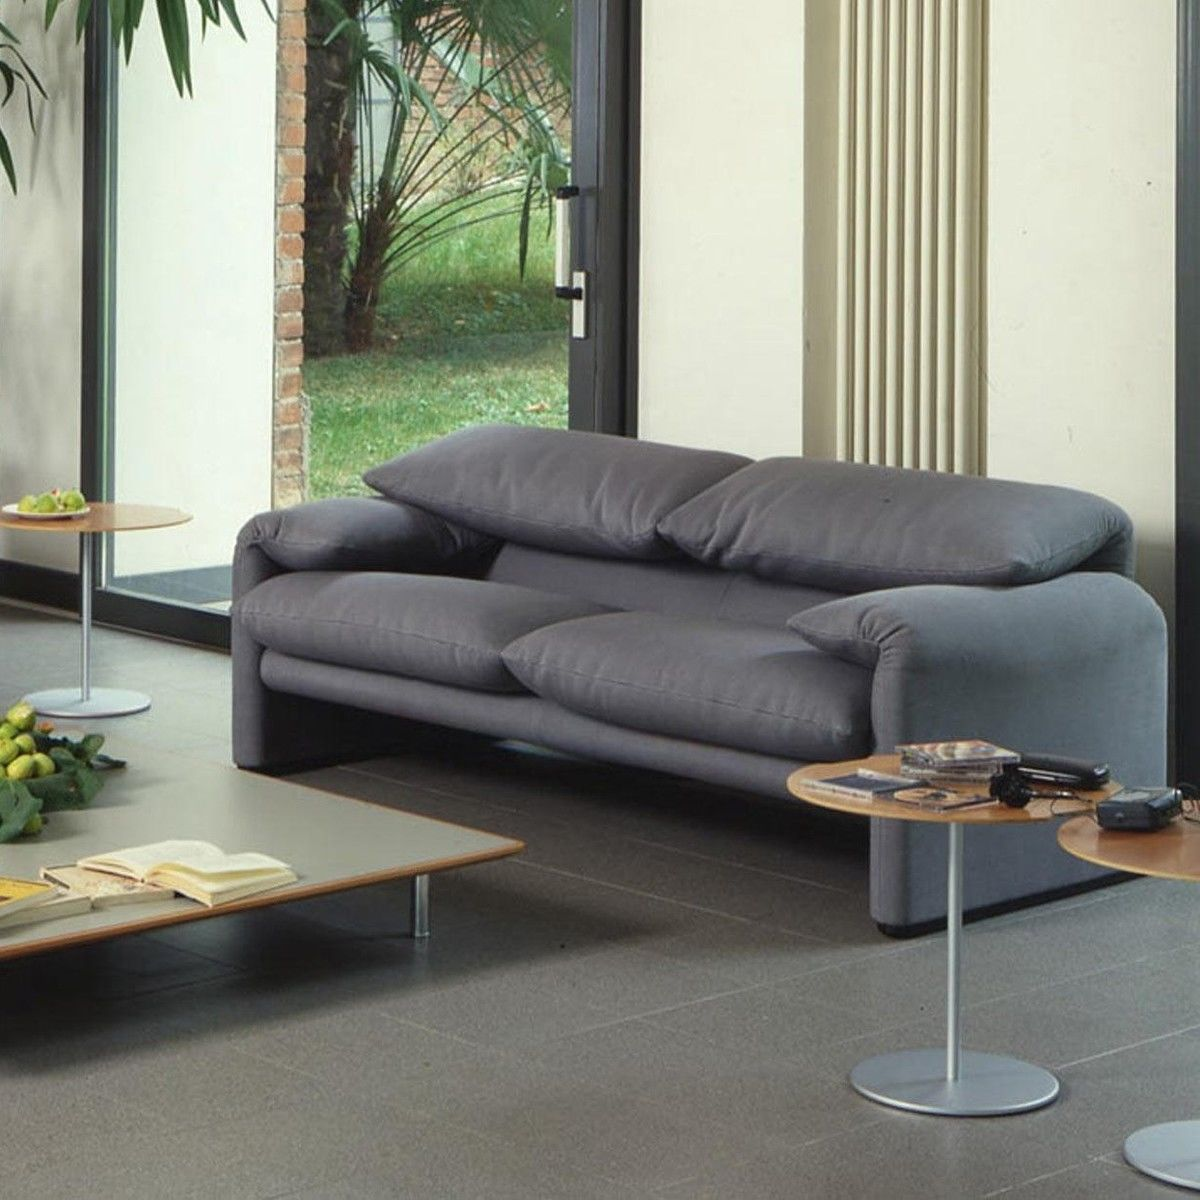 maralunga 40 2 zits sofa 166x86cm cassina. Black Bedroom Furniture Sets. Home Design Ideas